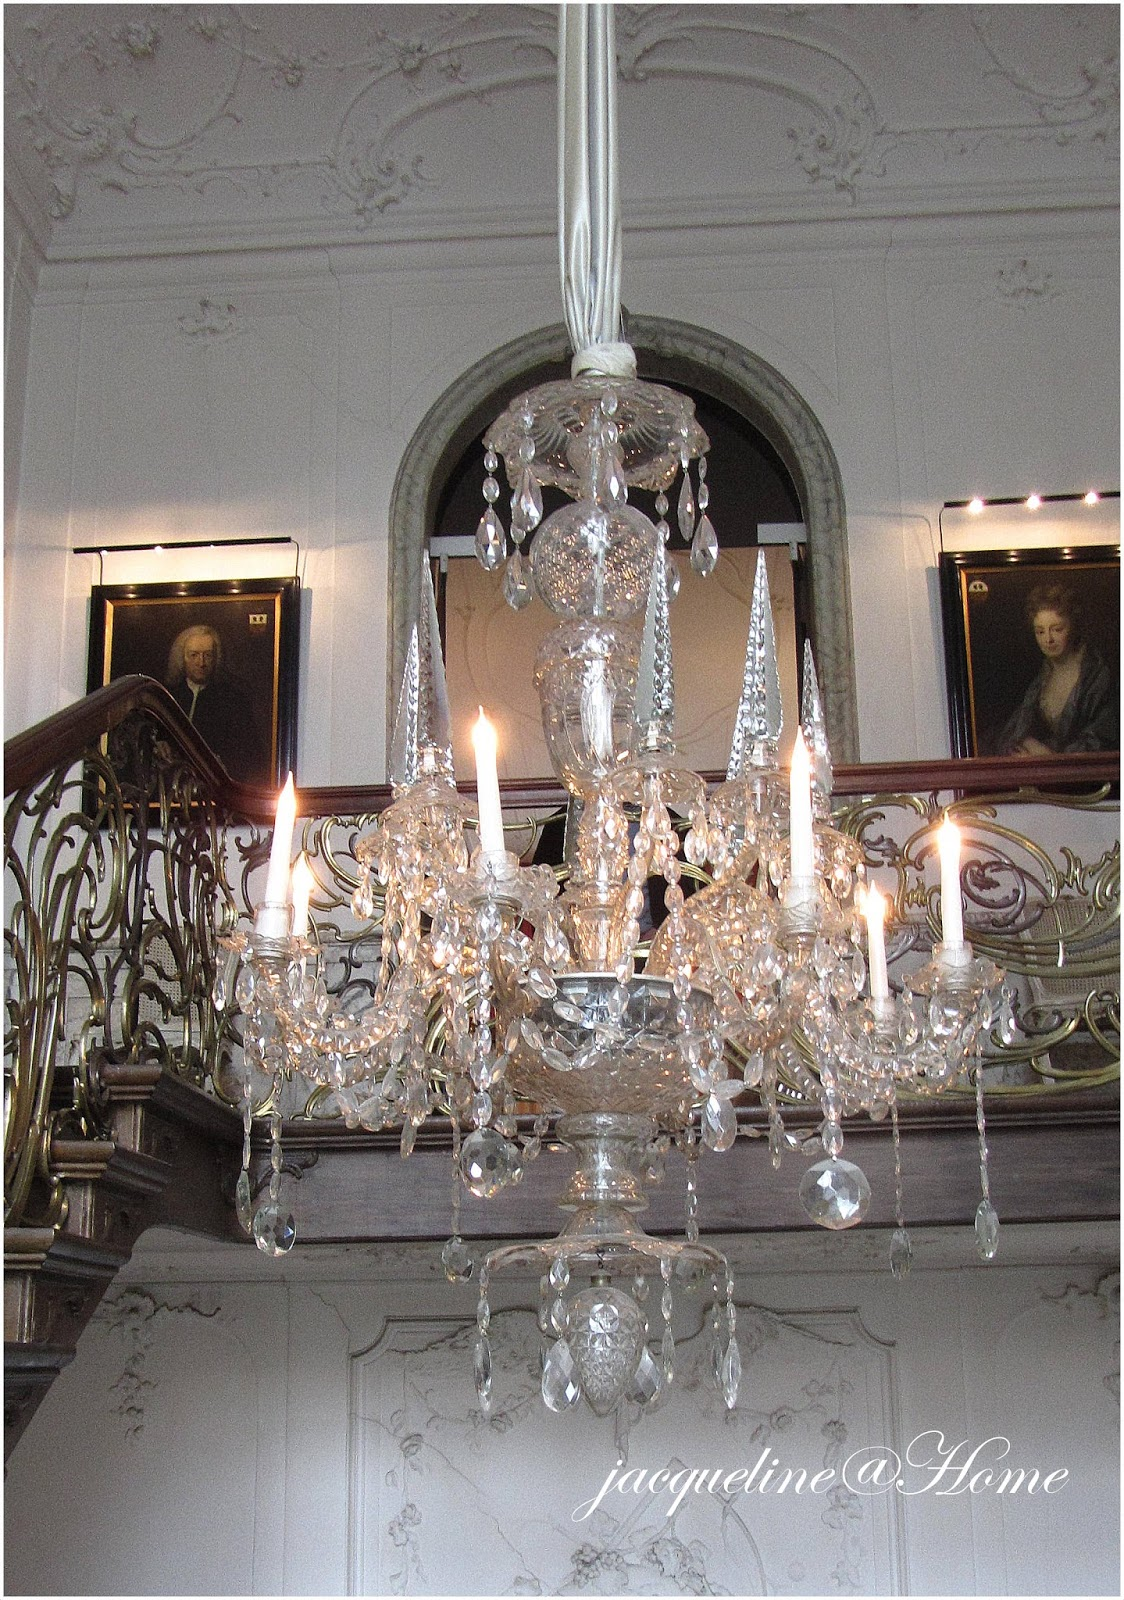 Home im gonna swing from the chandelier chandelier in a house in amsterdam arubaitofo Choice Image